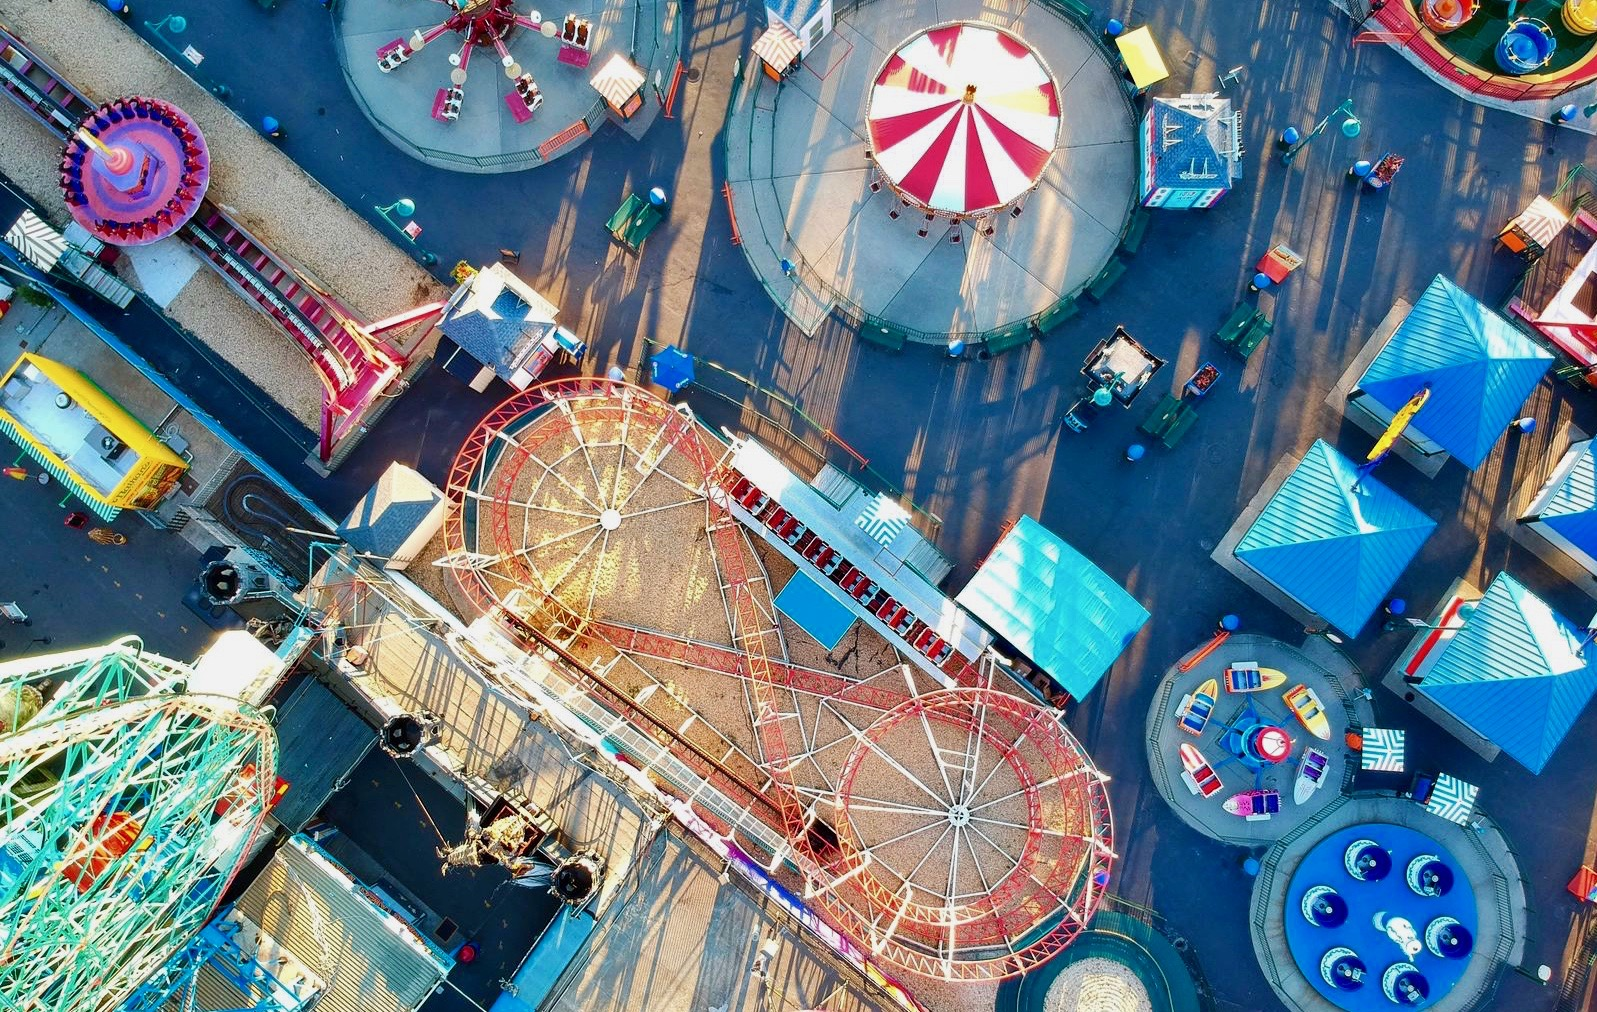 bird's eye view of carnival